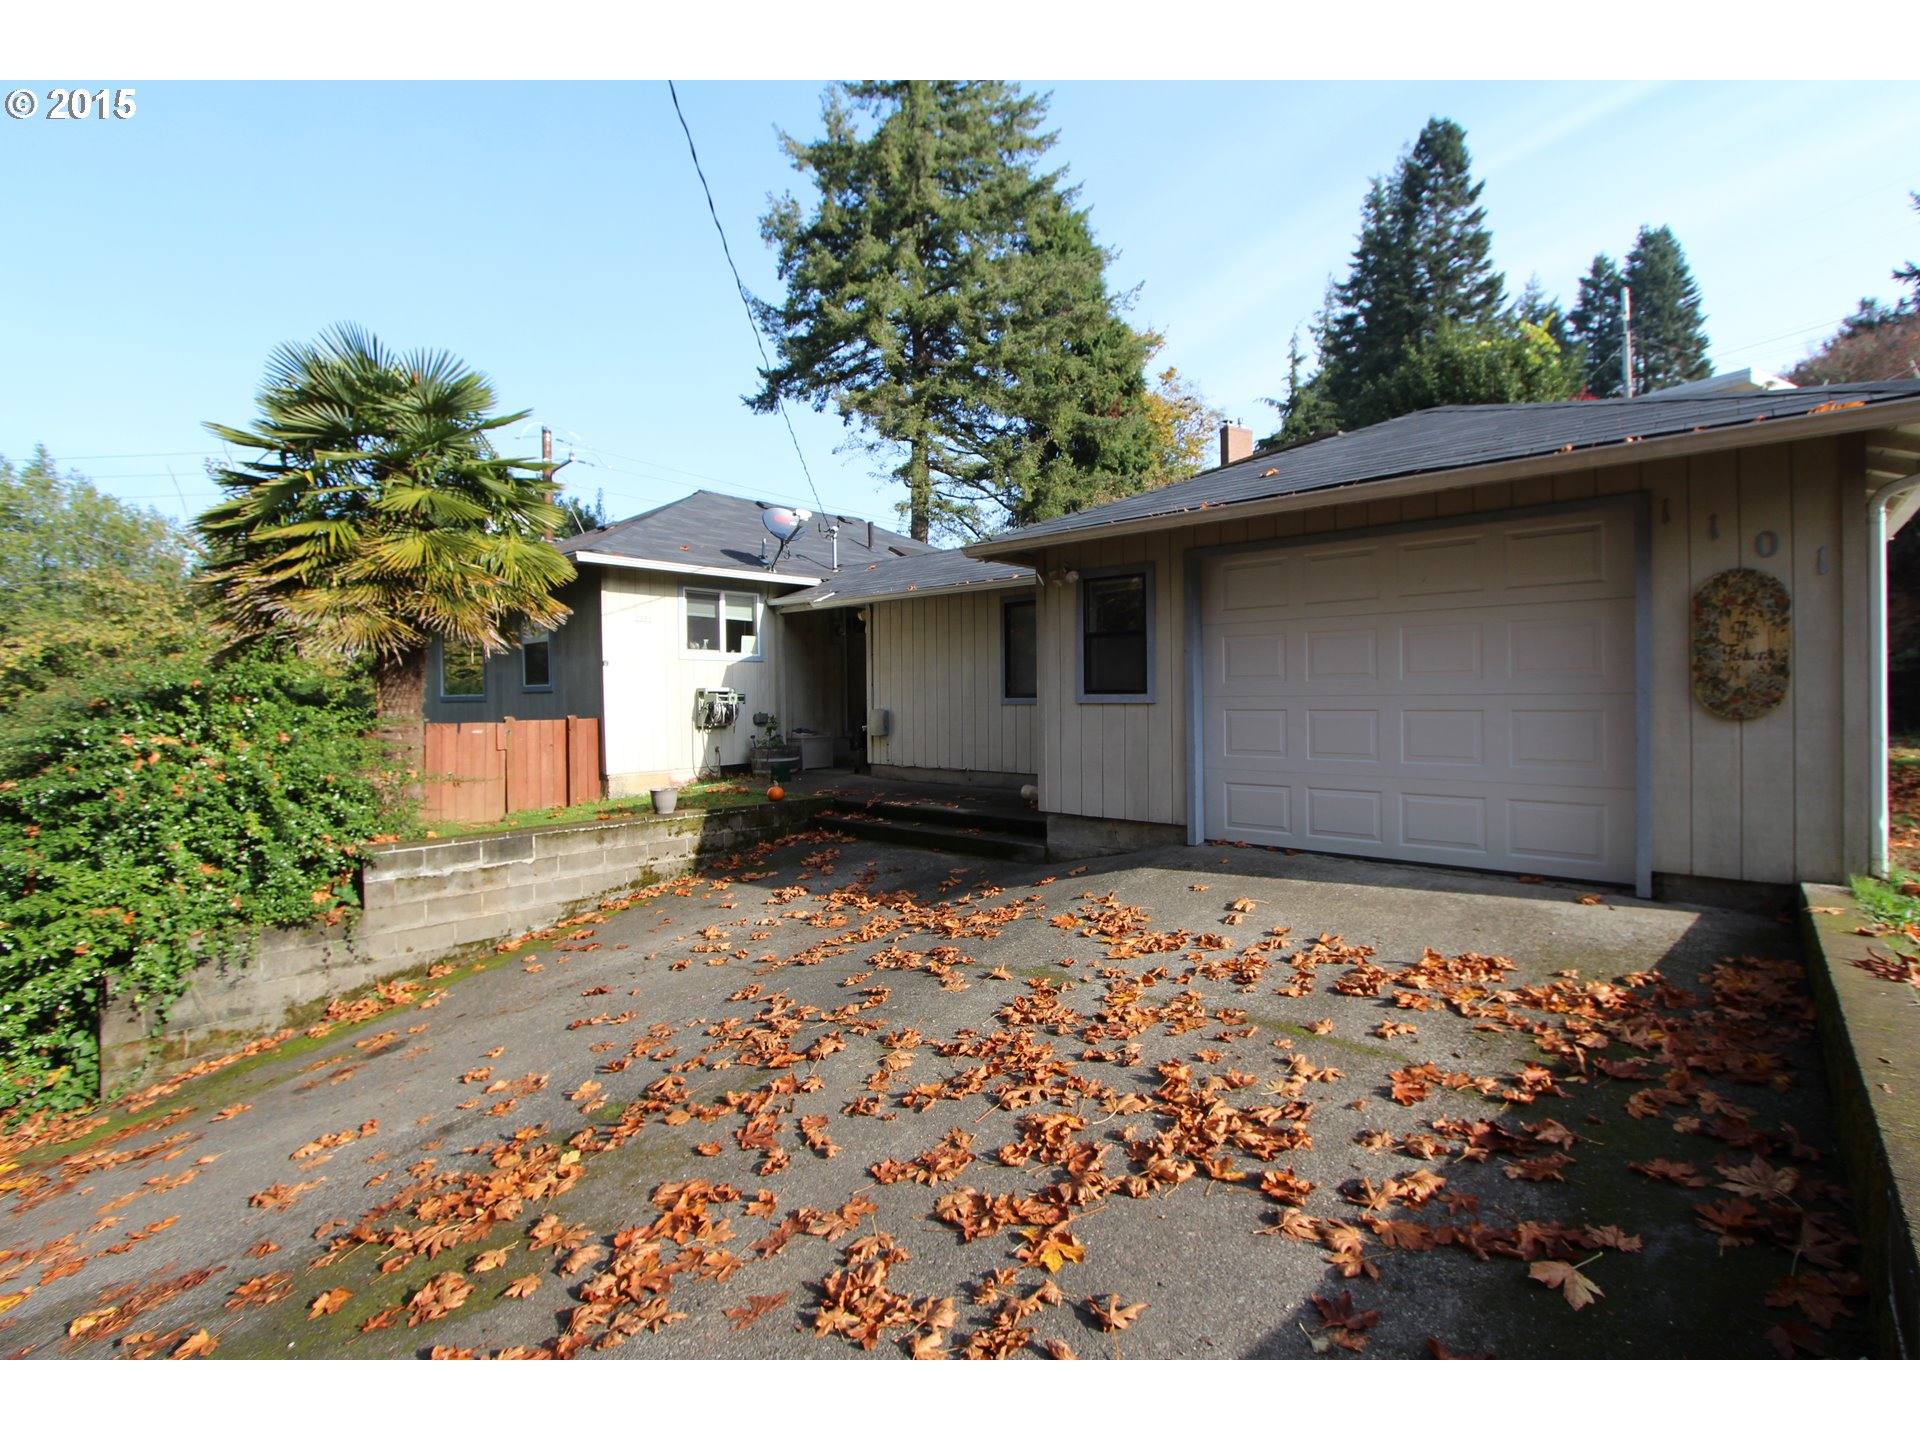 1101 E 2nd St, Coquille, OR